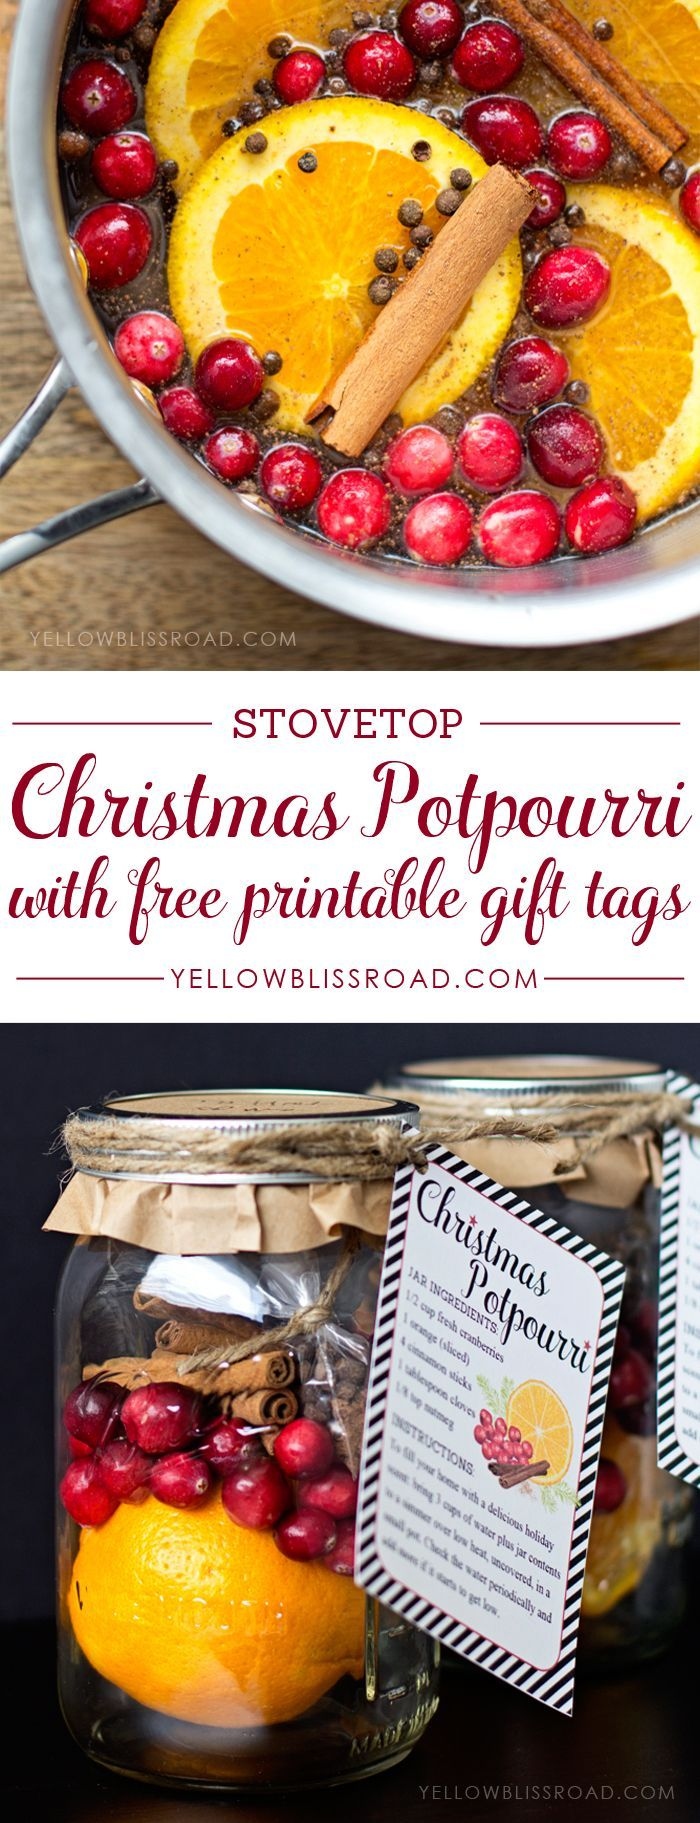 Christmas Potpourri with free printable tag - Such a great gift idea!!